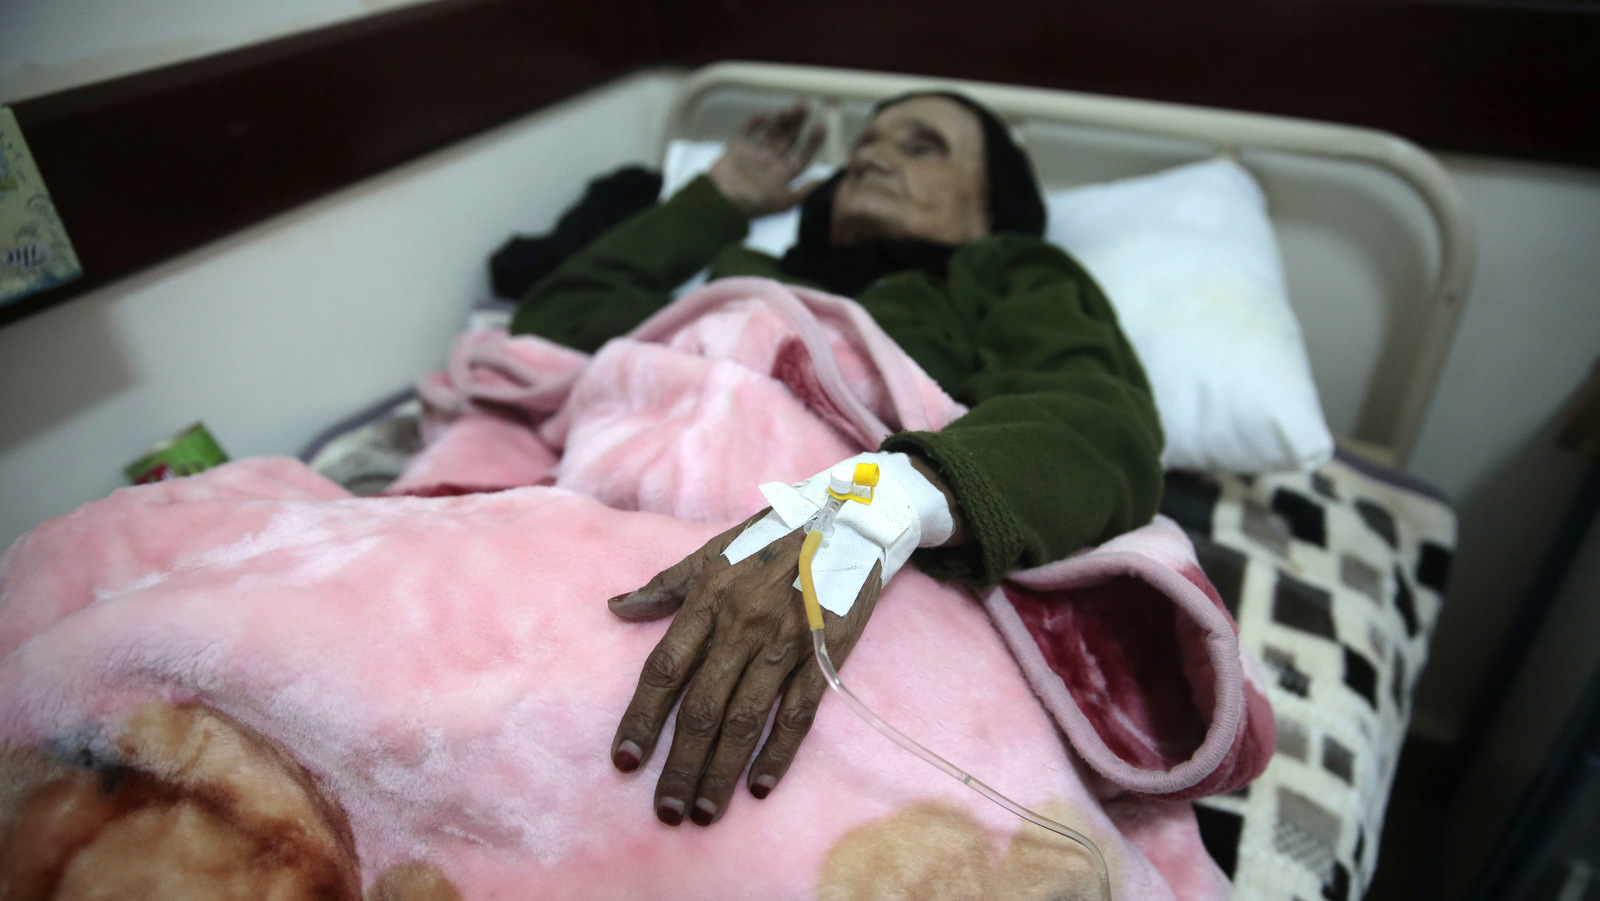 An elderly woman is treated for suspected cholera infection at a hospital in Sanaa, Yemen, May. 15, 2017. The U.N. humanitarian coordinator in Yemen says a cholera outbreak has killed 115 people over the past two weeks. (AP Photo/Hani Mohammed)